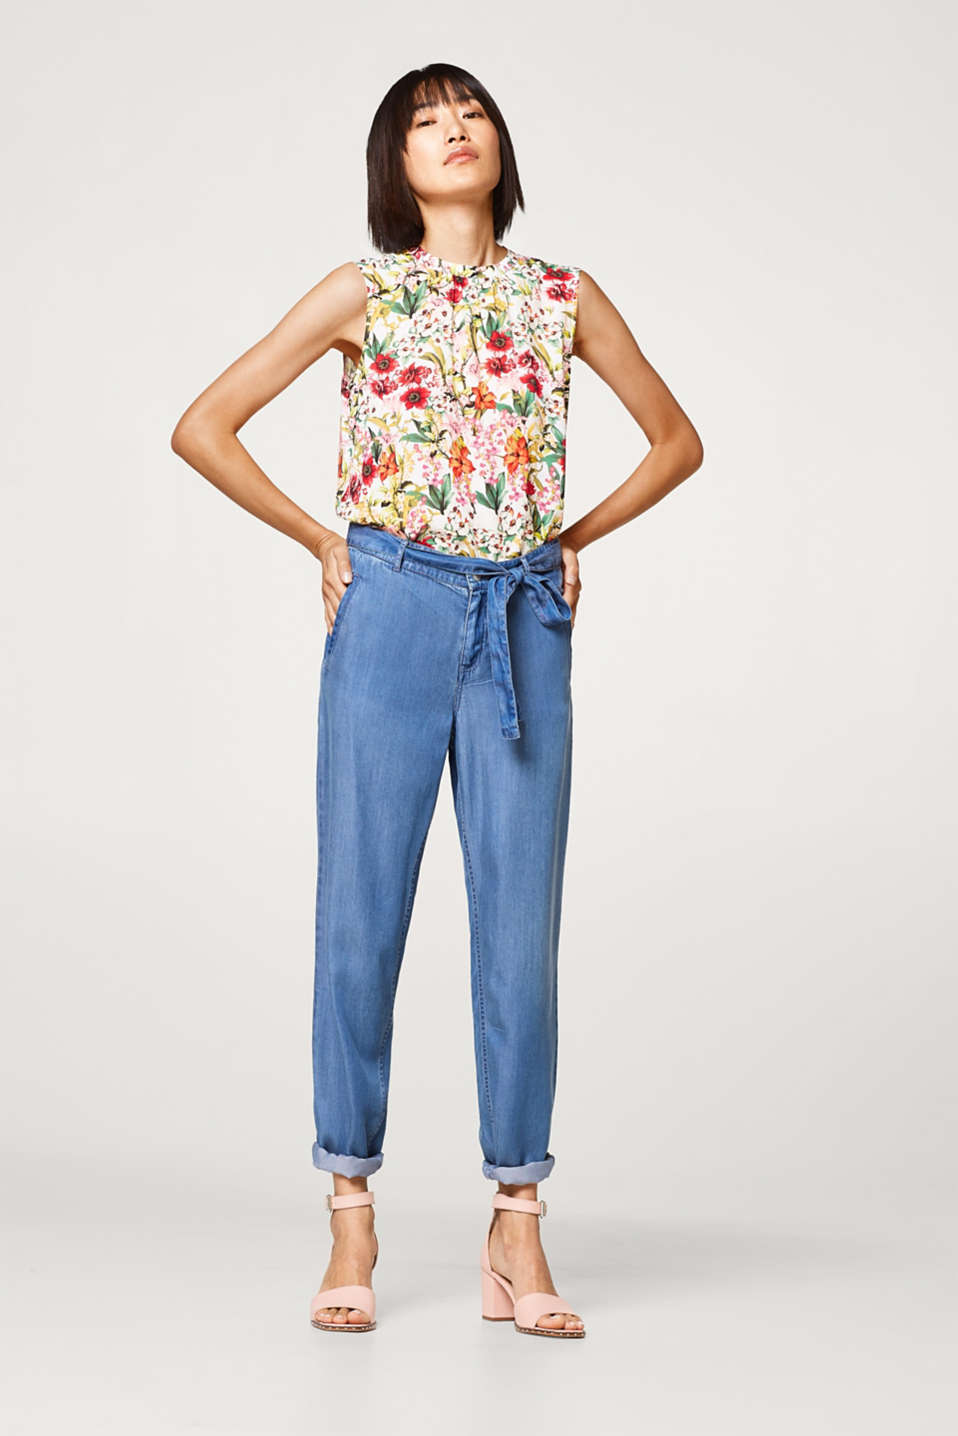 Delicate blouse top with a flower print